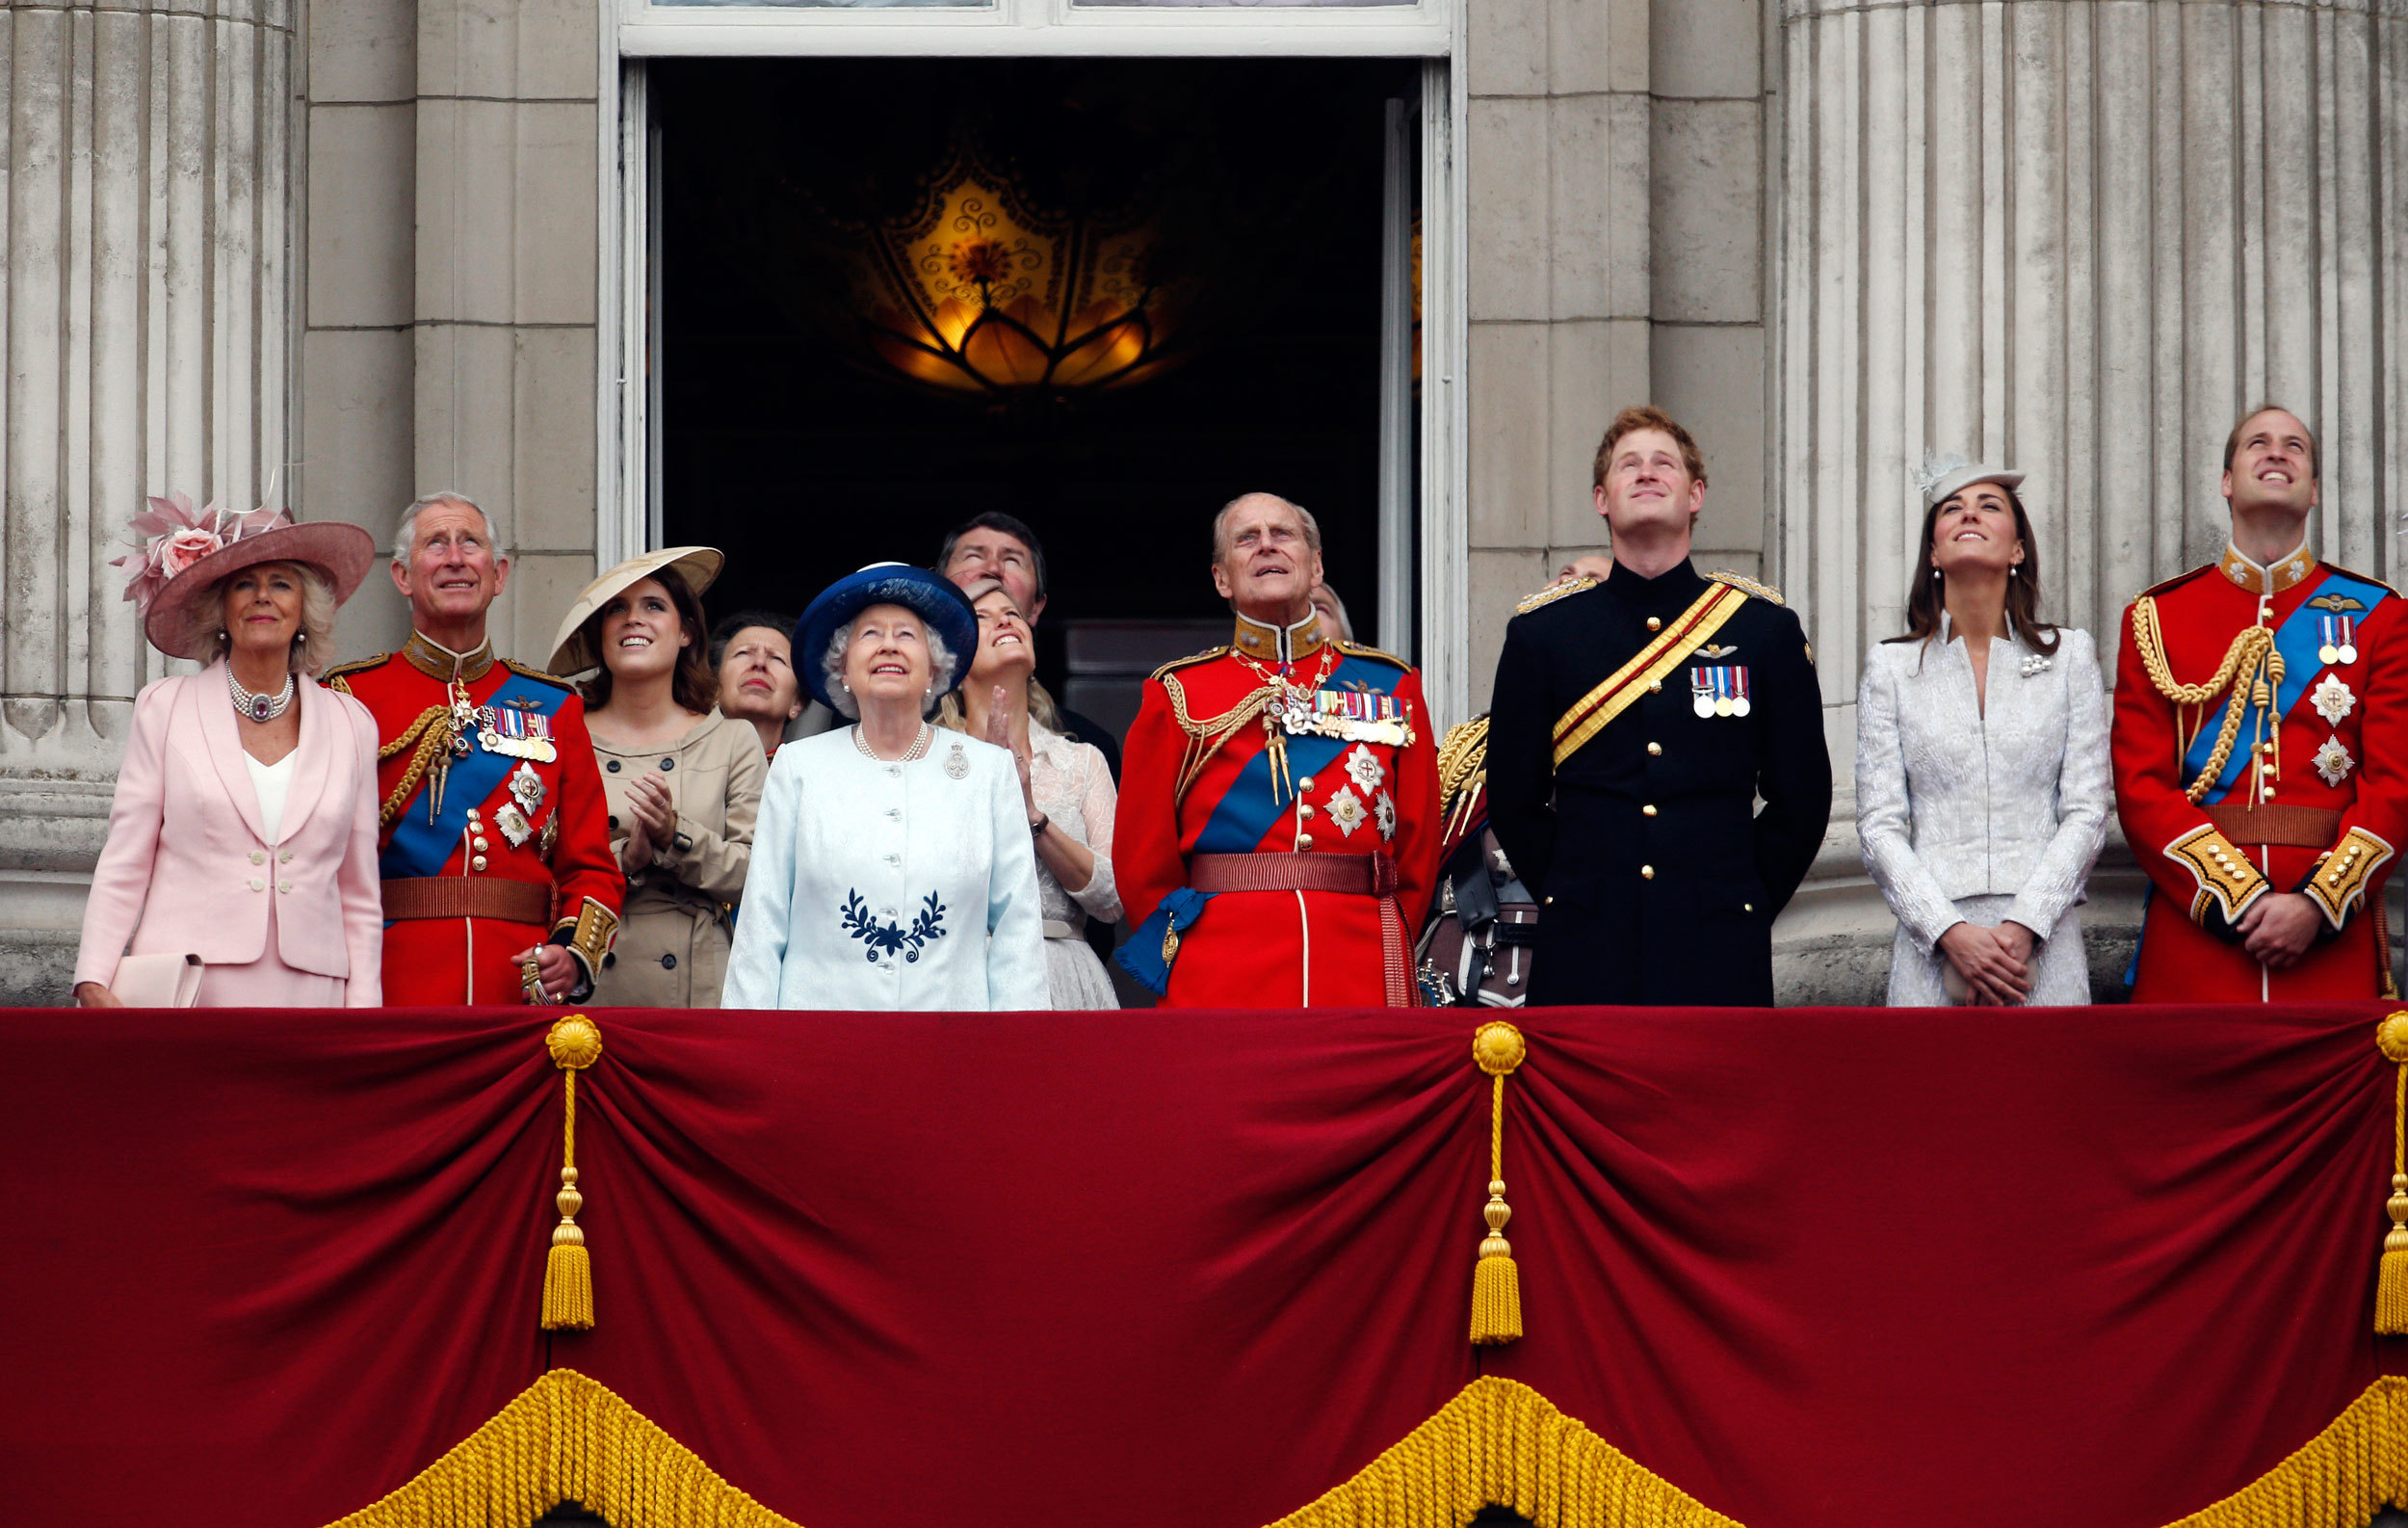 Gay british royal family, clarence center stripper